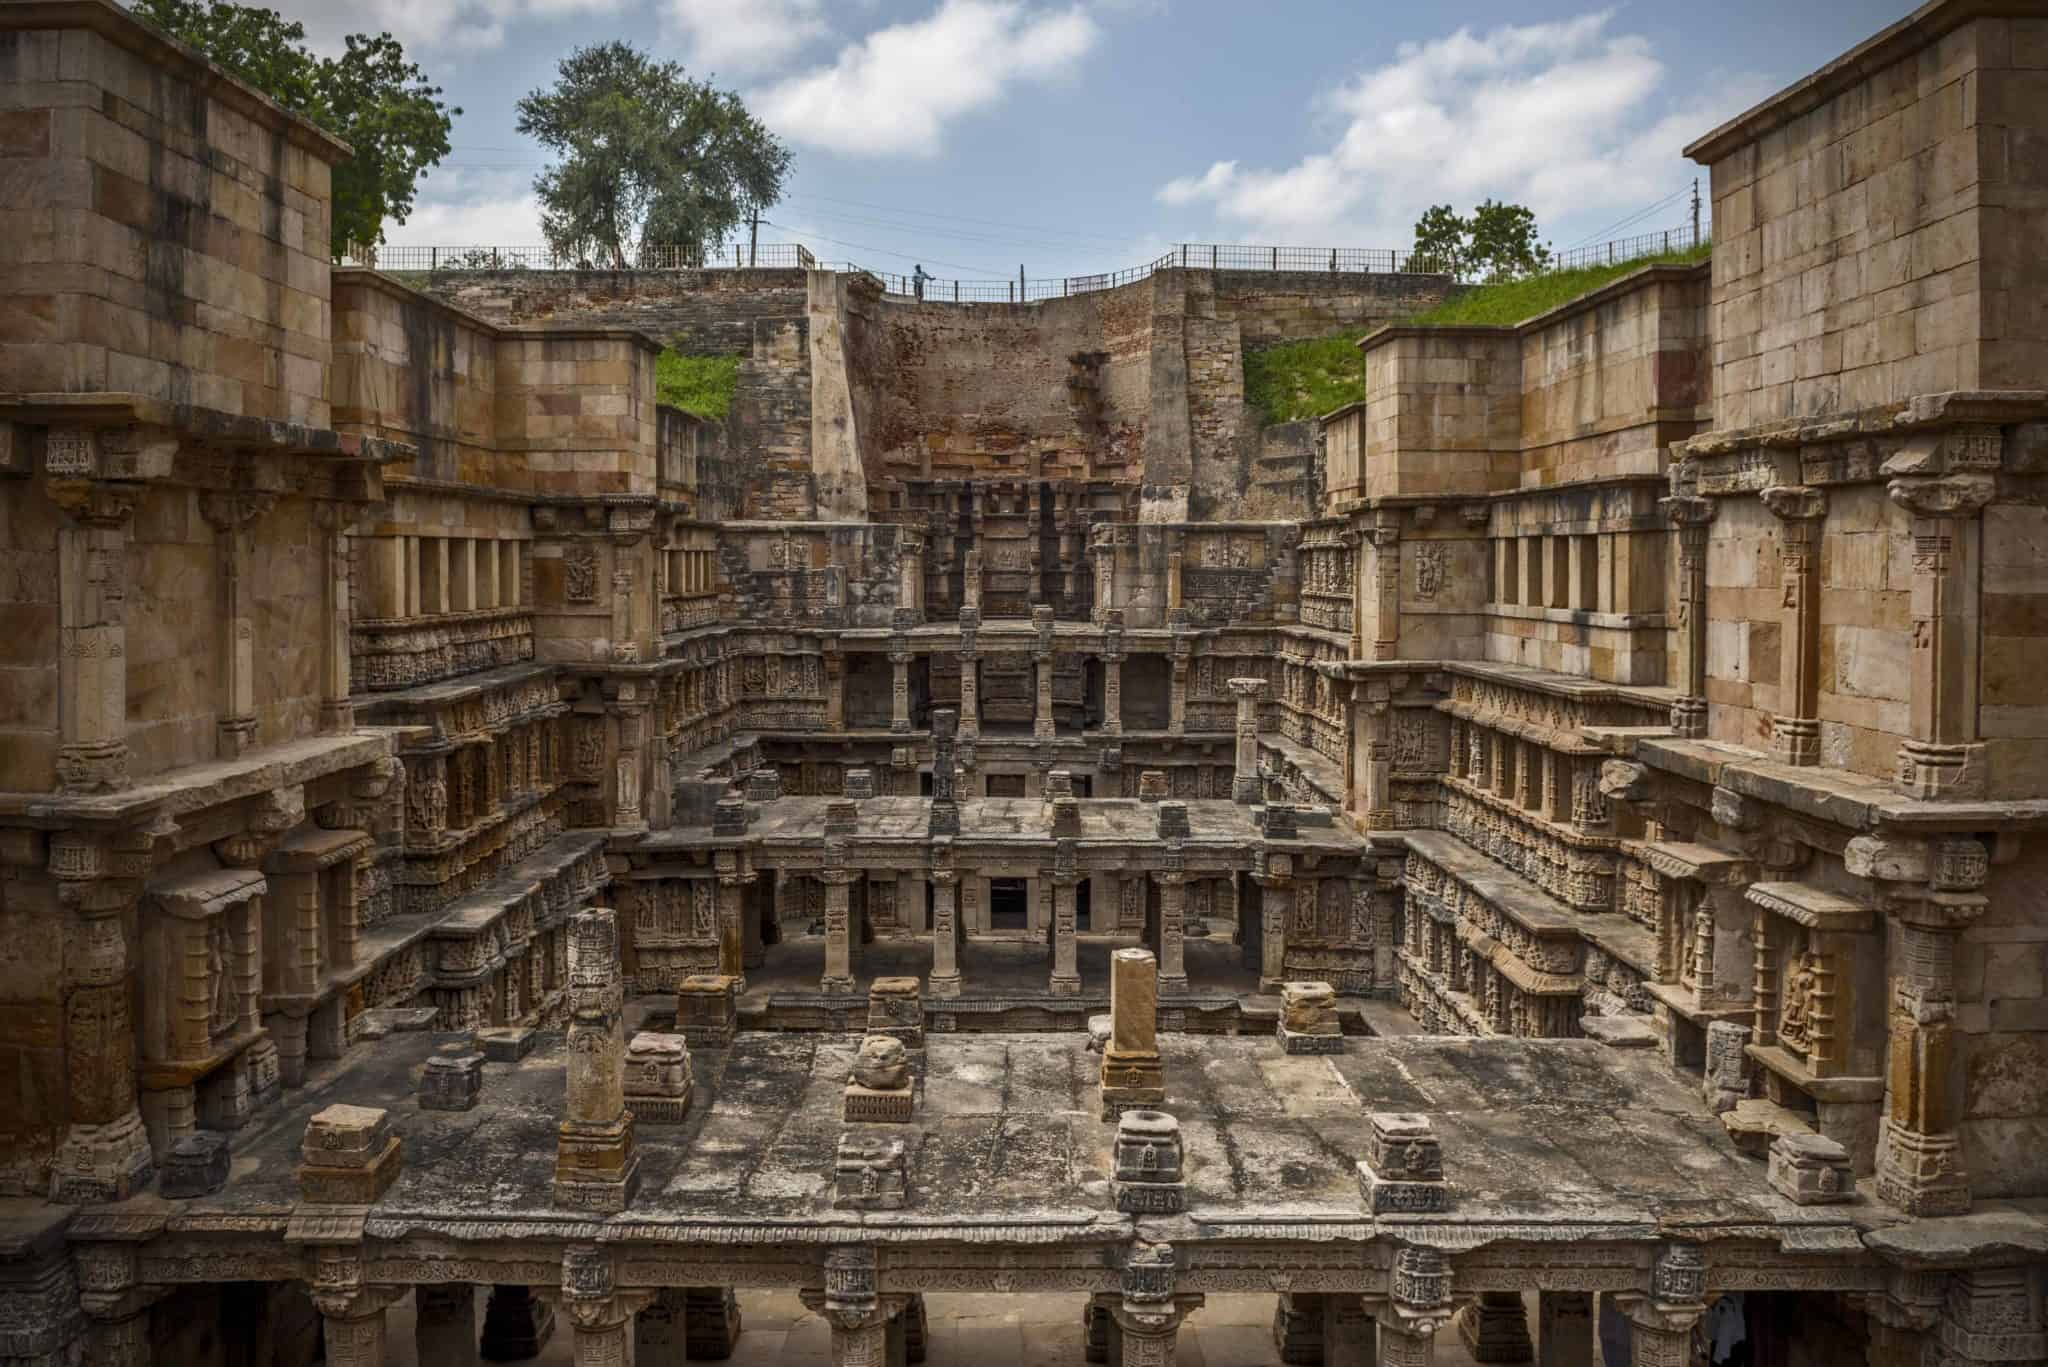 Rani ki Vav or the Queen's Stepwell